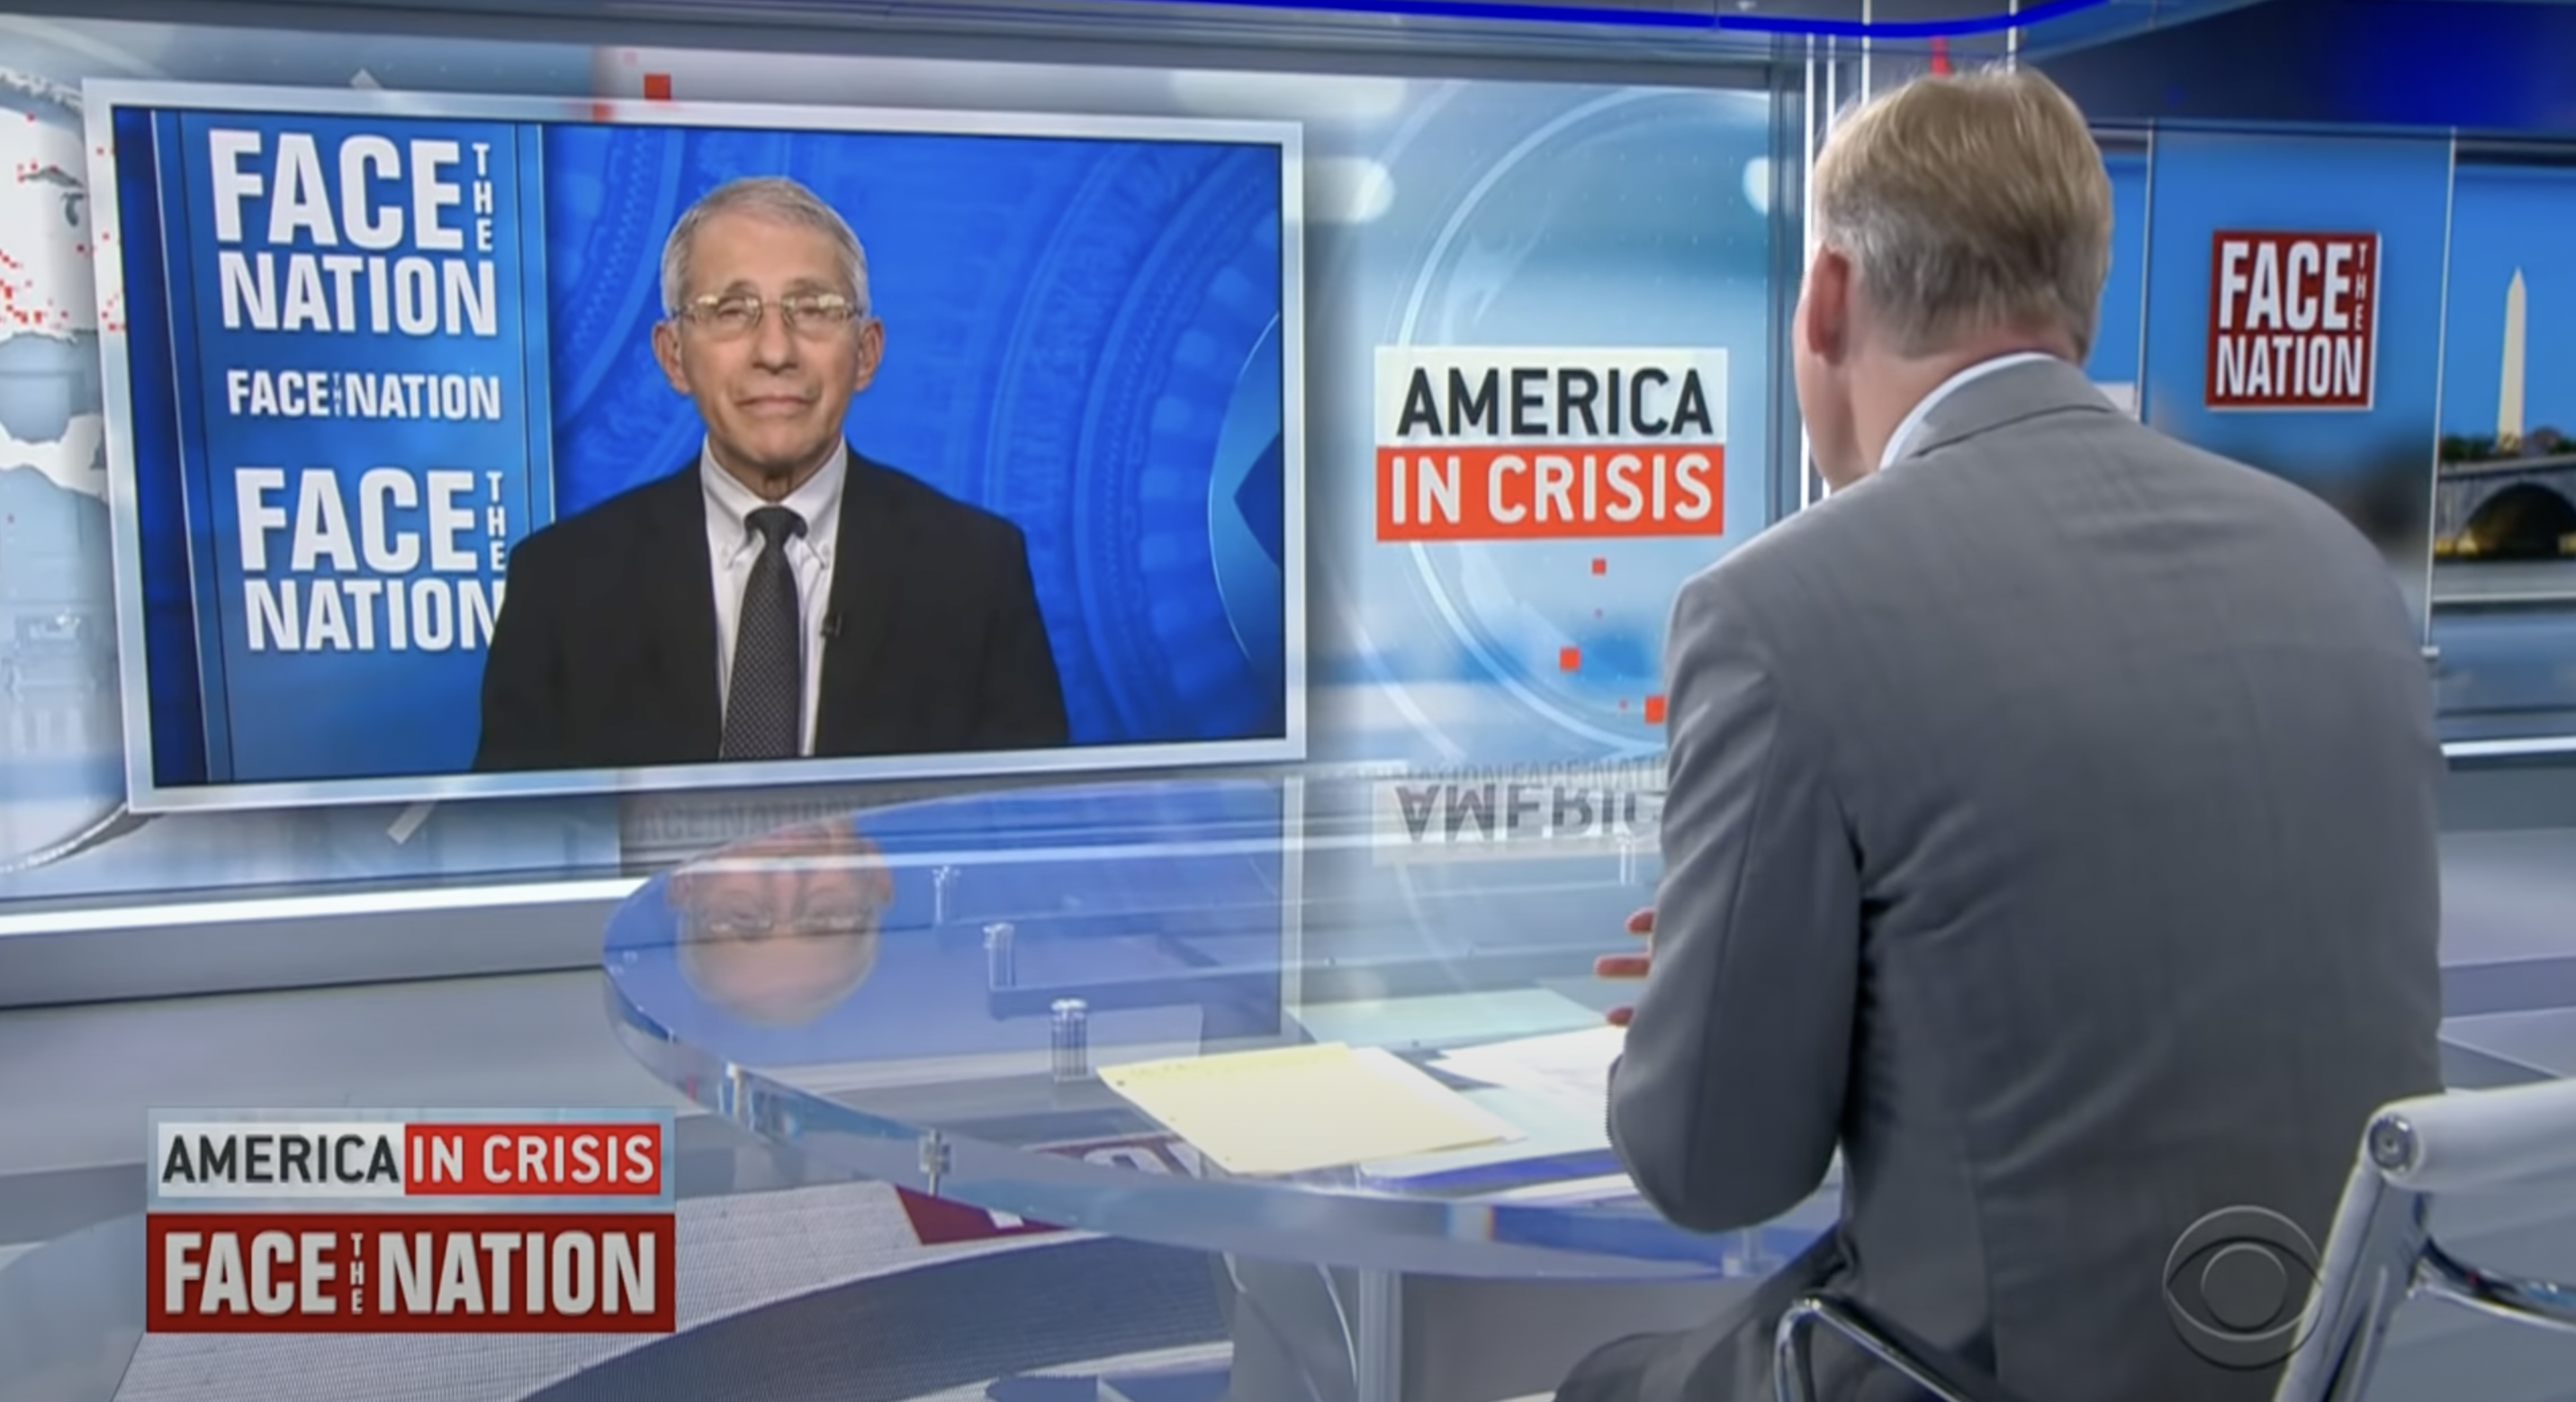 CBS' John Dickerson to Fauci: Do unvaccinated Americans 'feel insulted' by those urging them to get the shot?